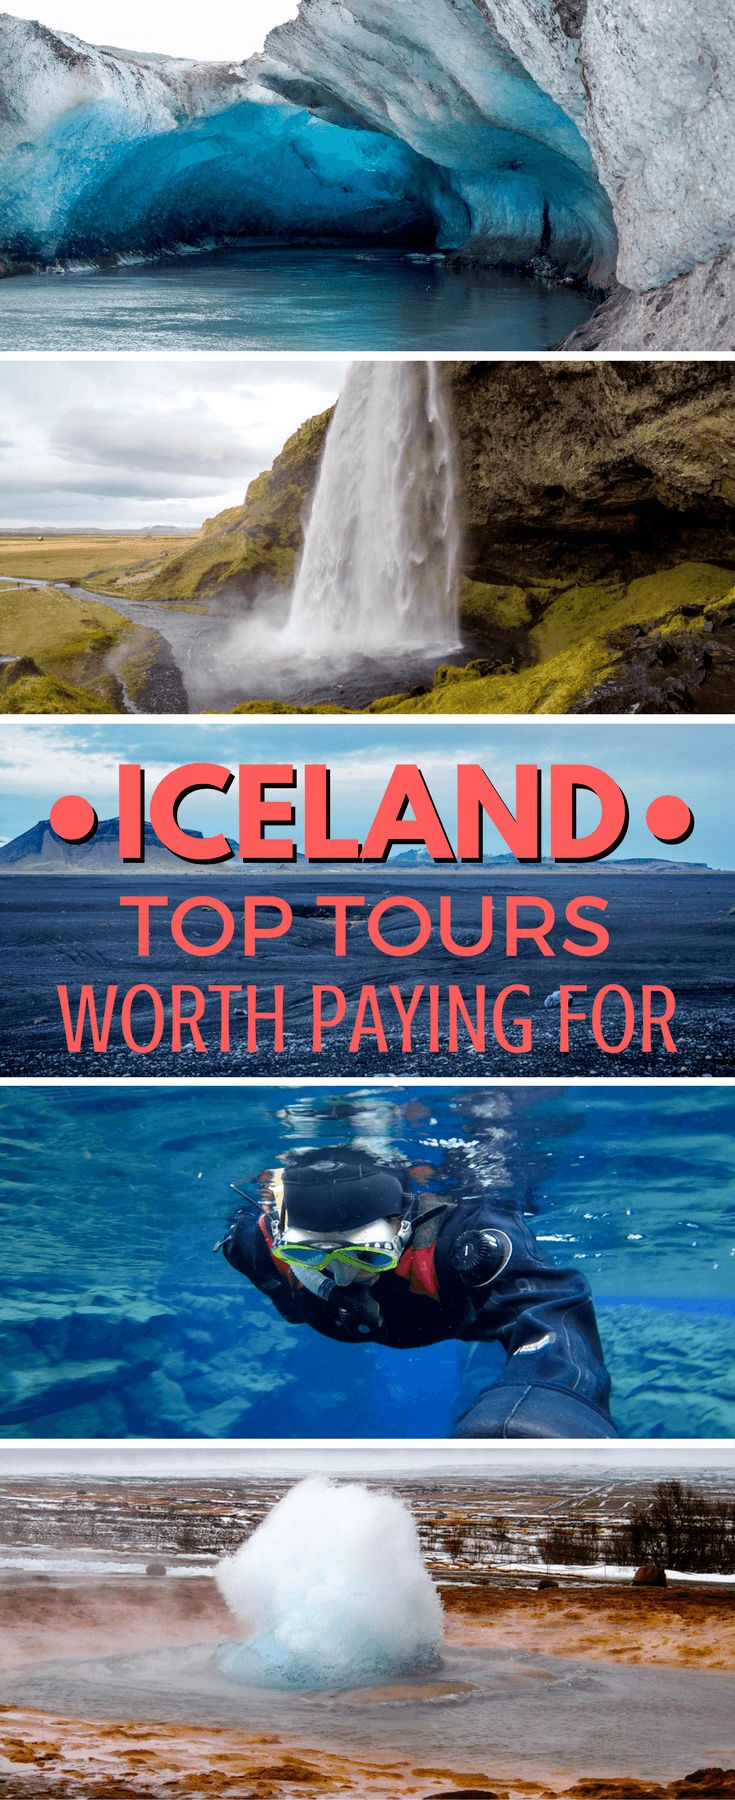 Best Tours Worth Paying for (and the ones to avoid) in Iceland